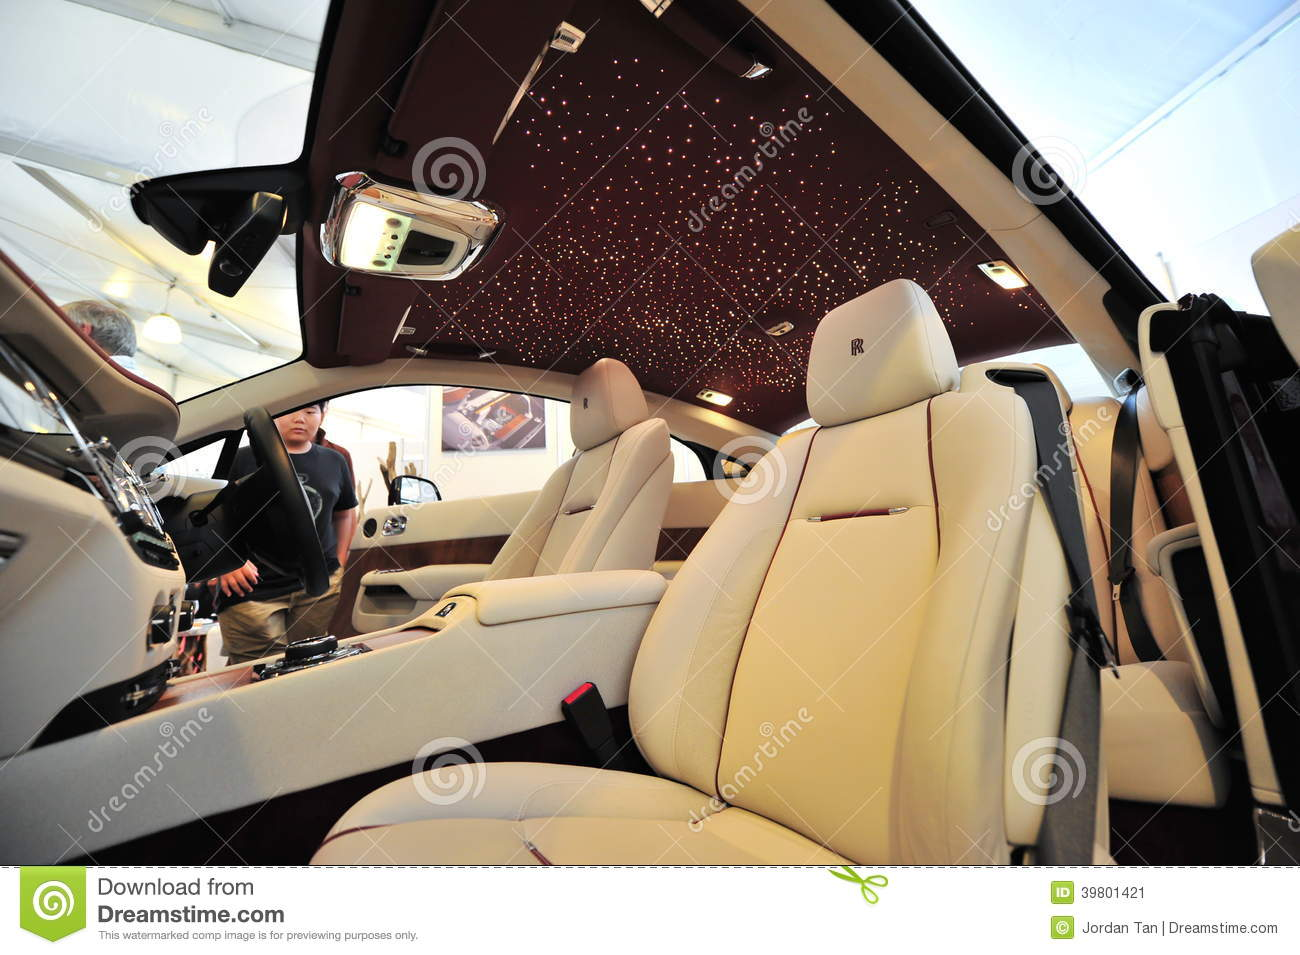 Hand Made Unique Interior Of The Rolls Royce Wraith On Display During Singapore Yacht Show At One Degree 15 Marina Club Stock Photo 39801421 Megapixl